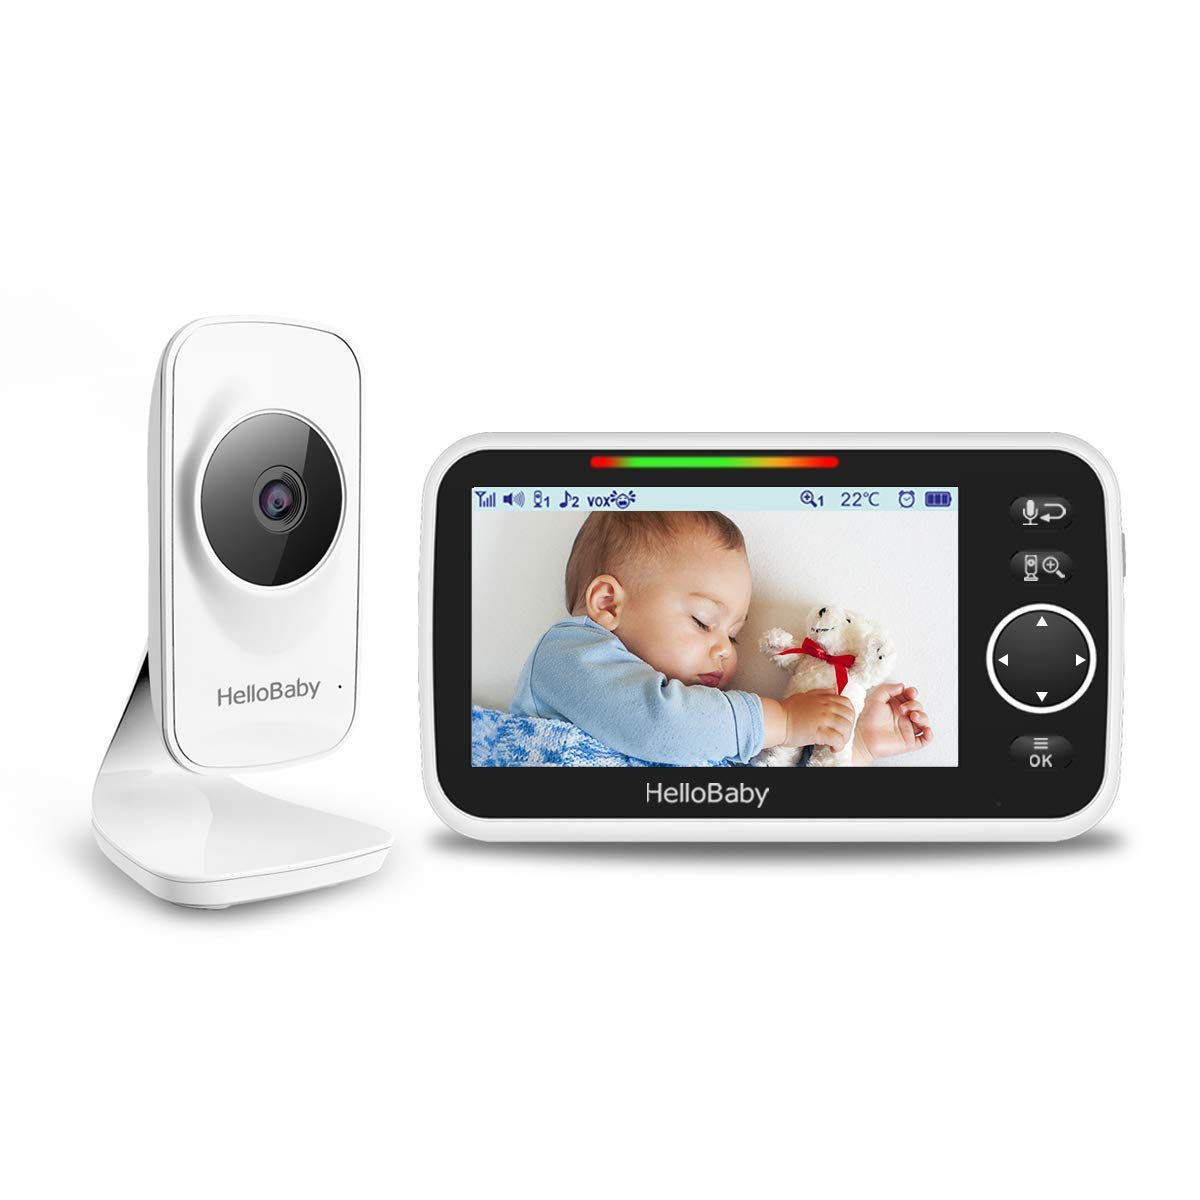 Baby Monitor with 5 inch Large Screen, HelloBaby Video Baby Monitor with Camera and Audio,Room Temperature Sensor, 2-Way Audio,VOX,Digital Zoom,Long Range,Night Vision